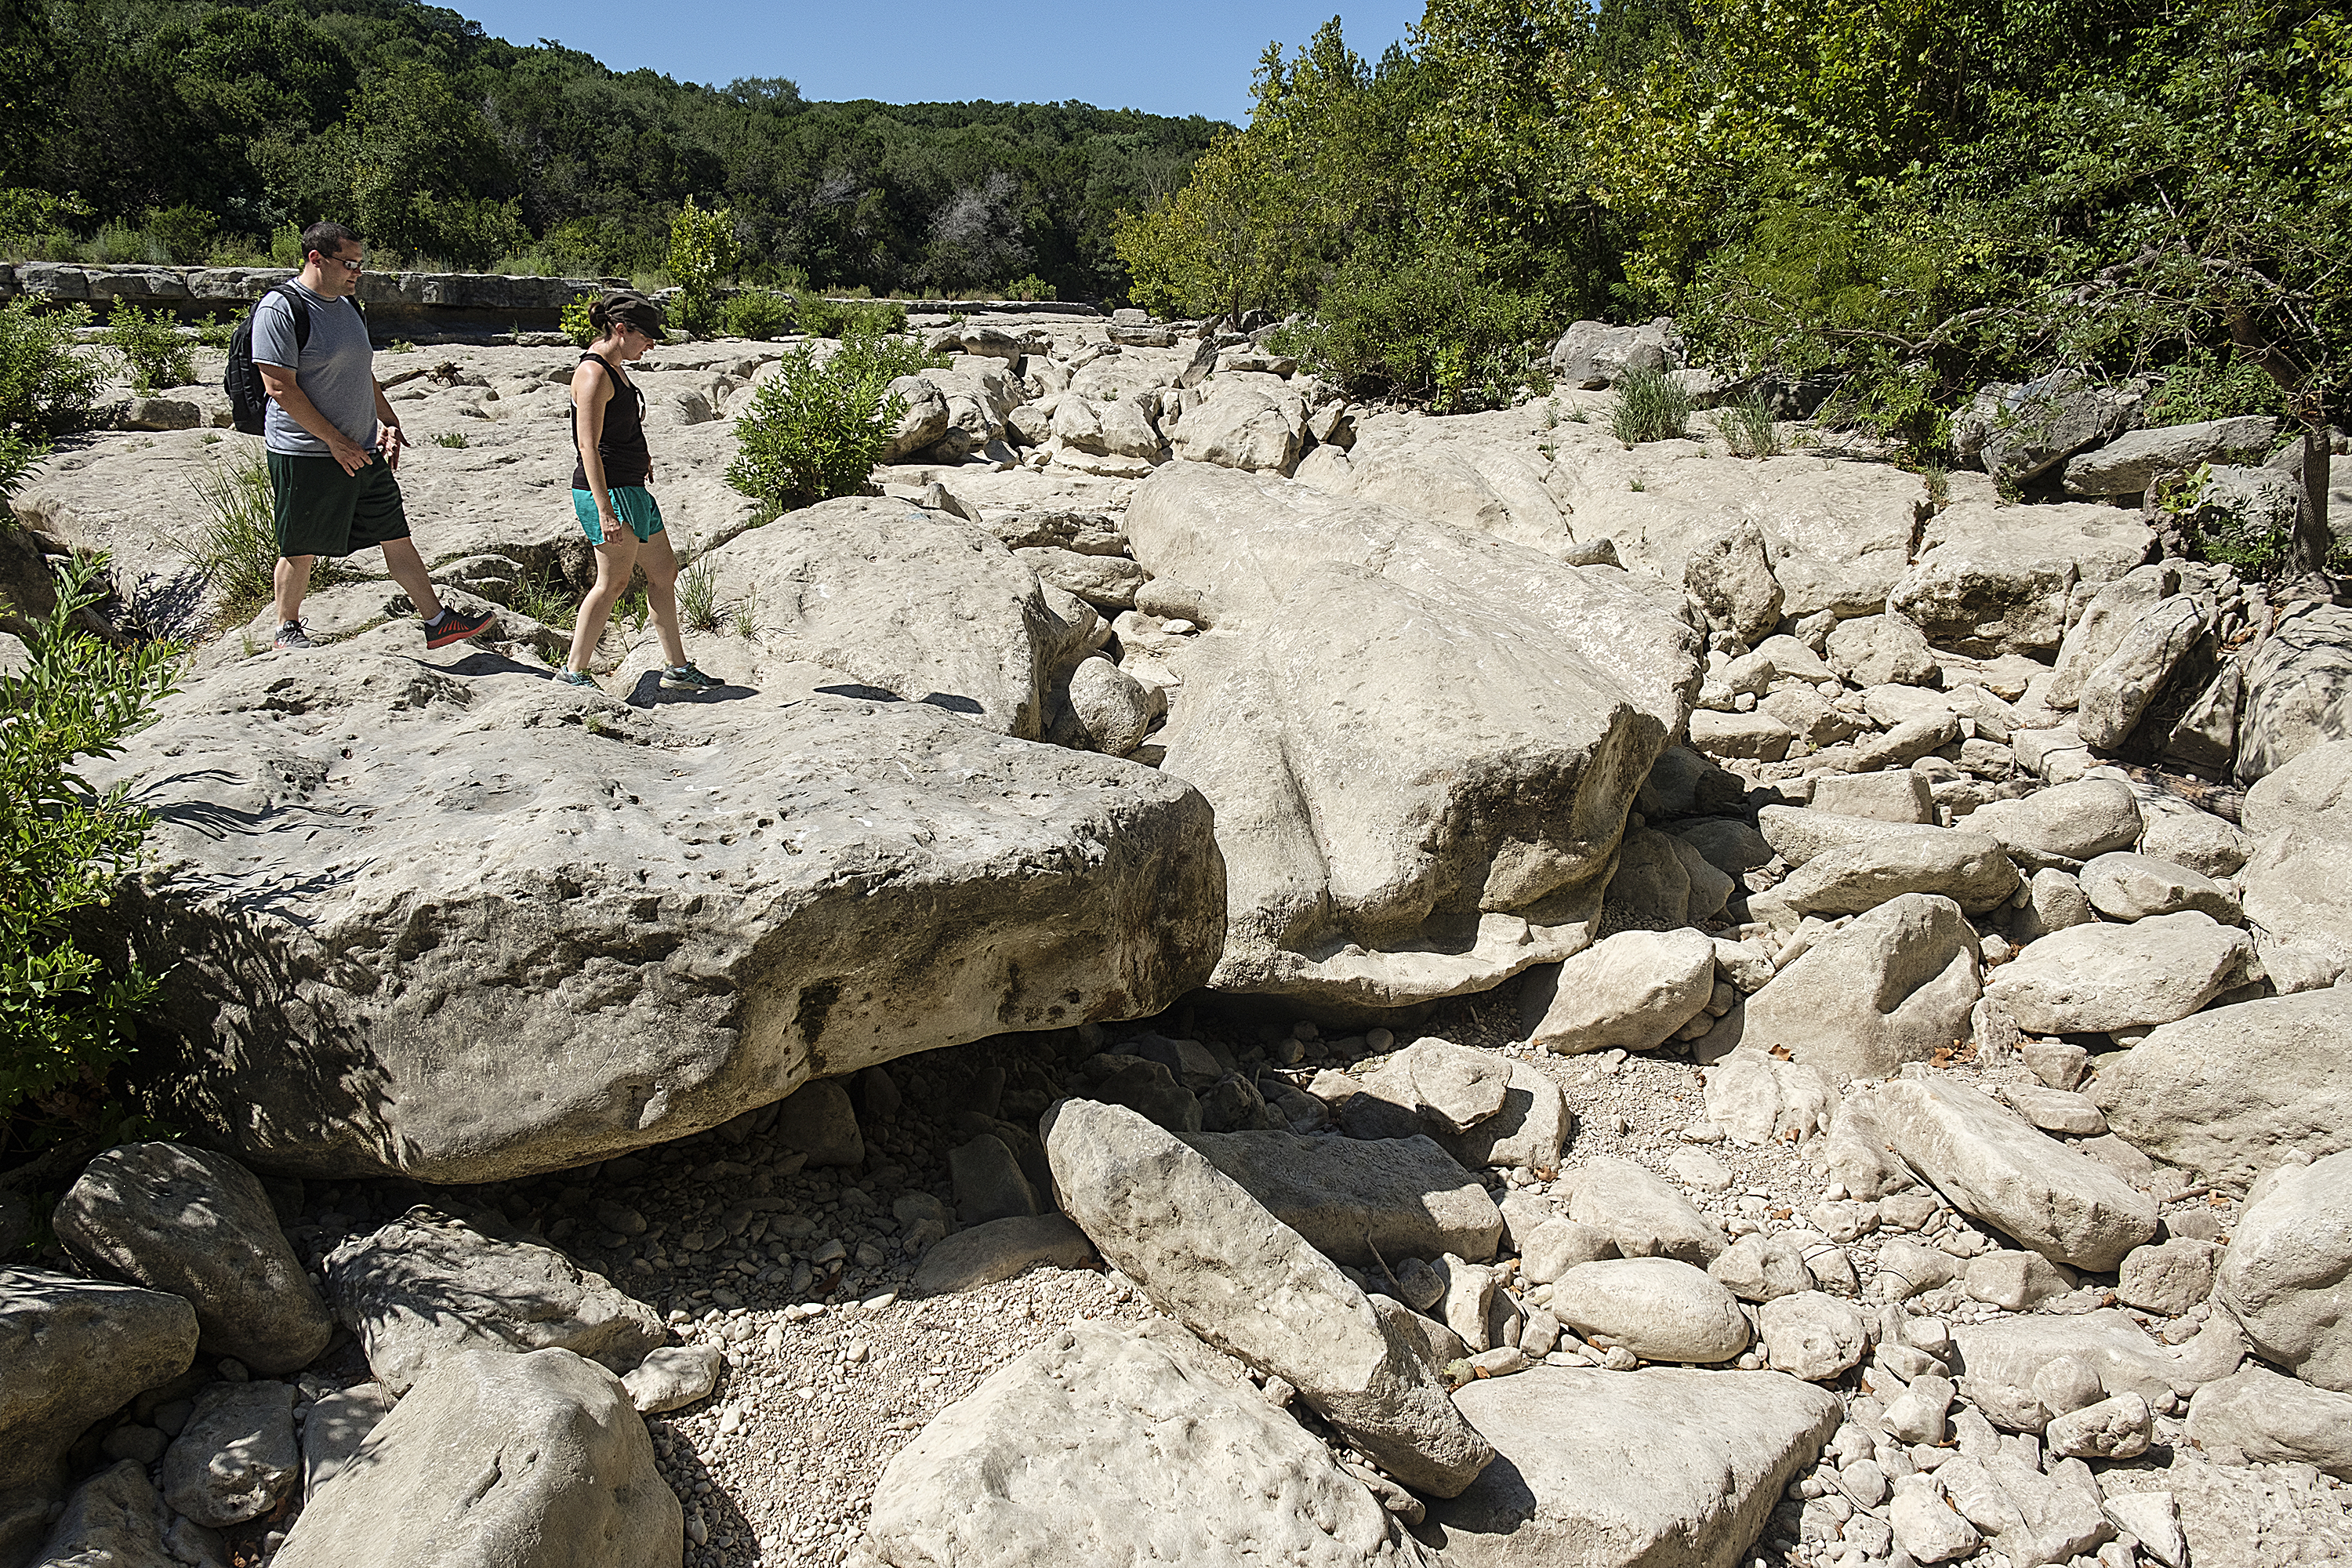 07-27-2017 -- A couple walks among the boulders near Campbell's Hole on the Barton Creek Greenbelt. Photo © Alberto Martinez